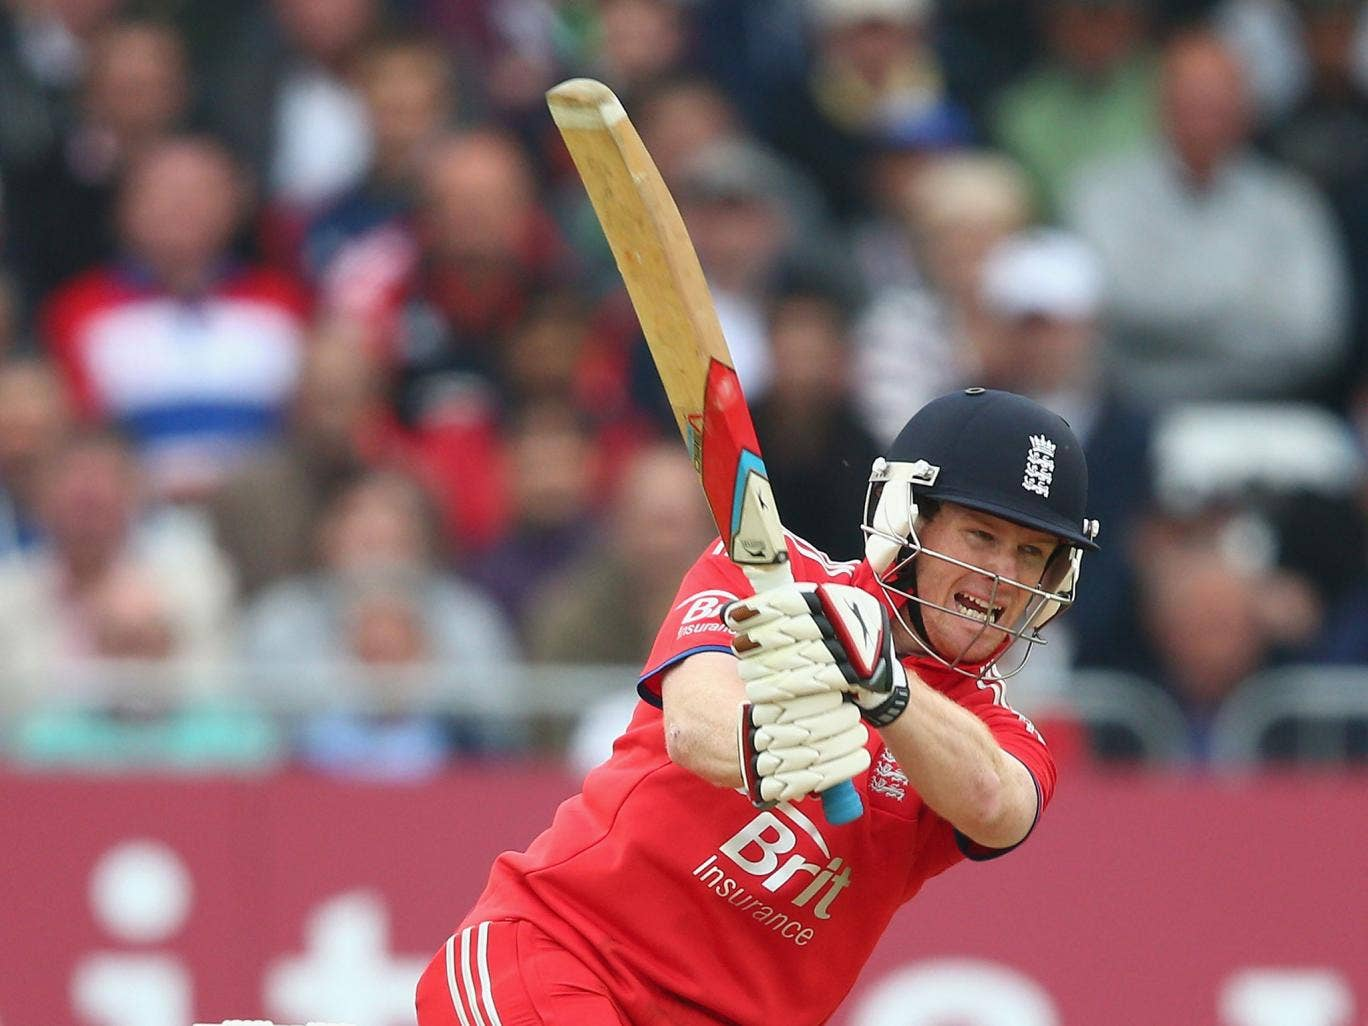 Dublin-born Eoin Morgan switched allegiance to England